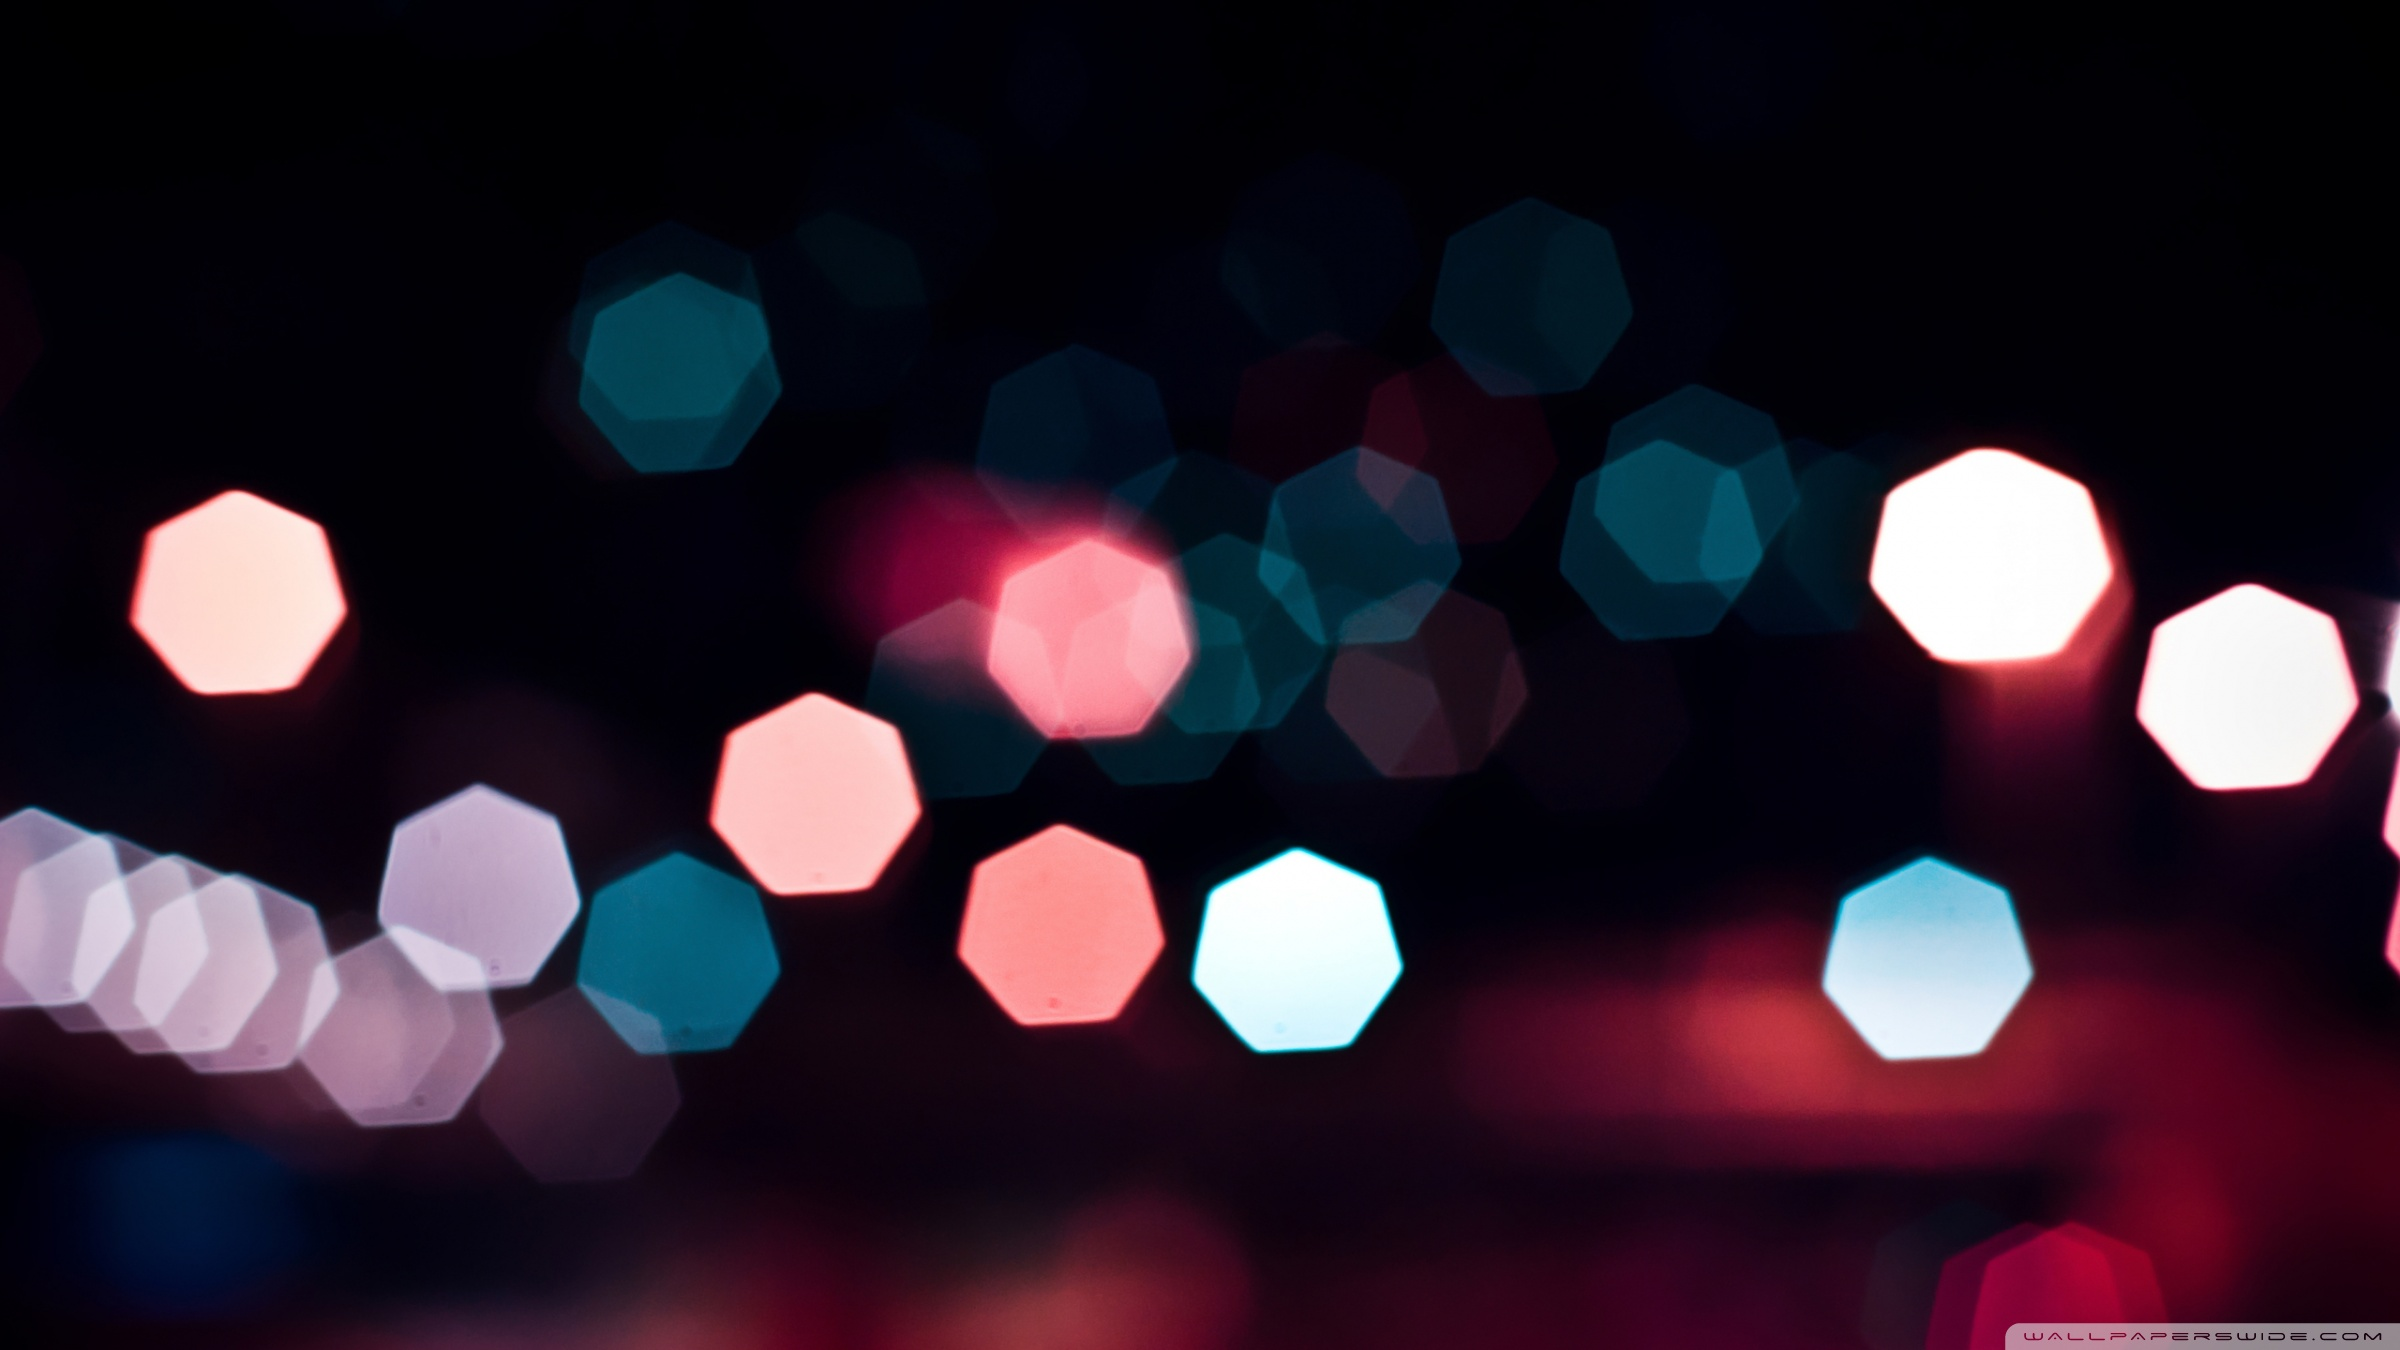 Lights HD Wallpaper